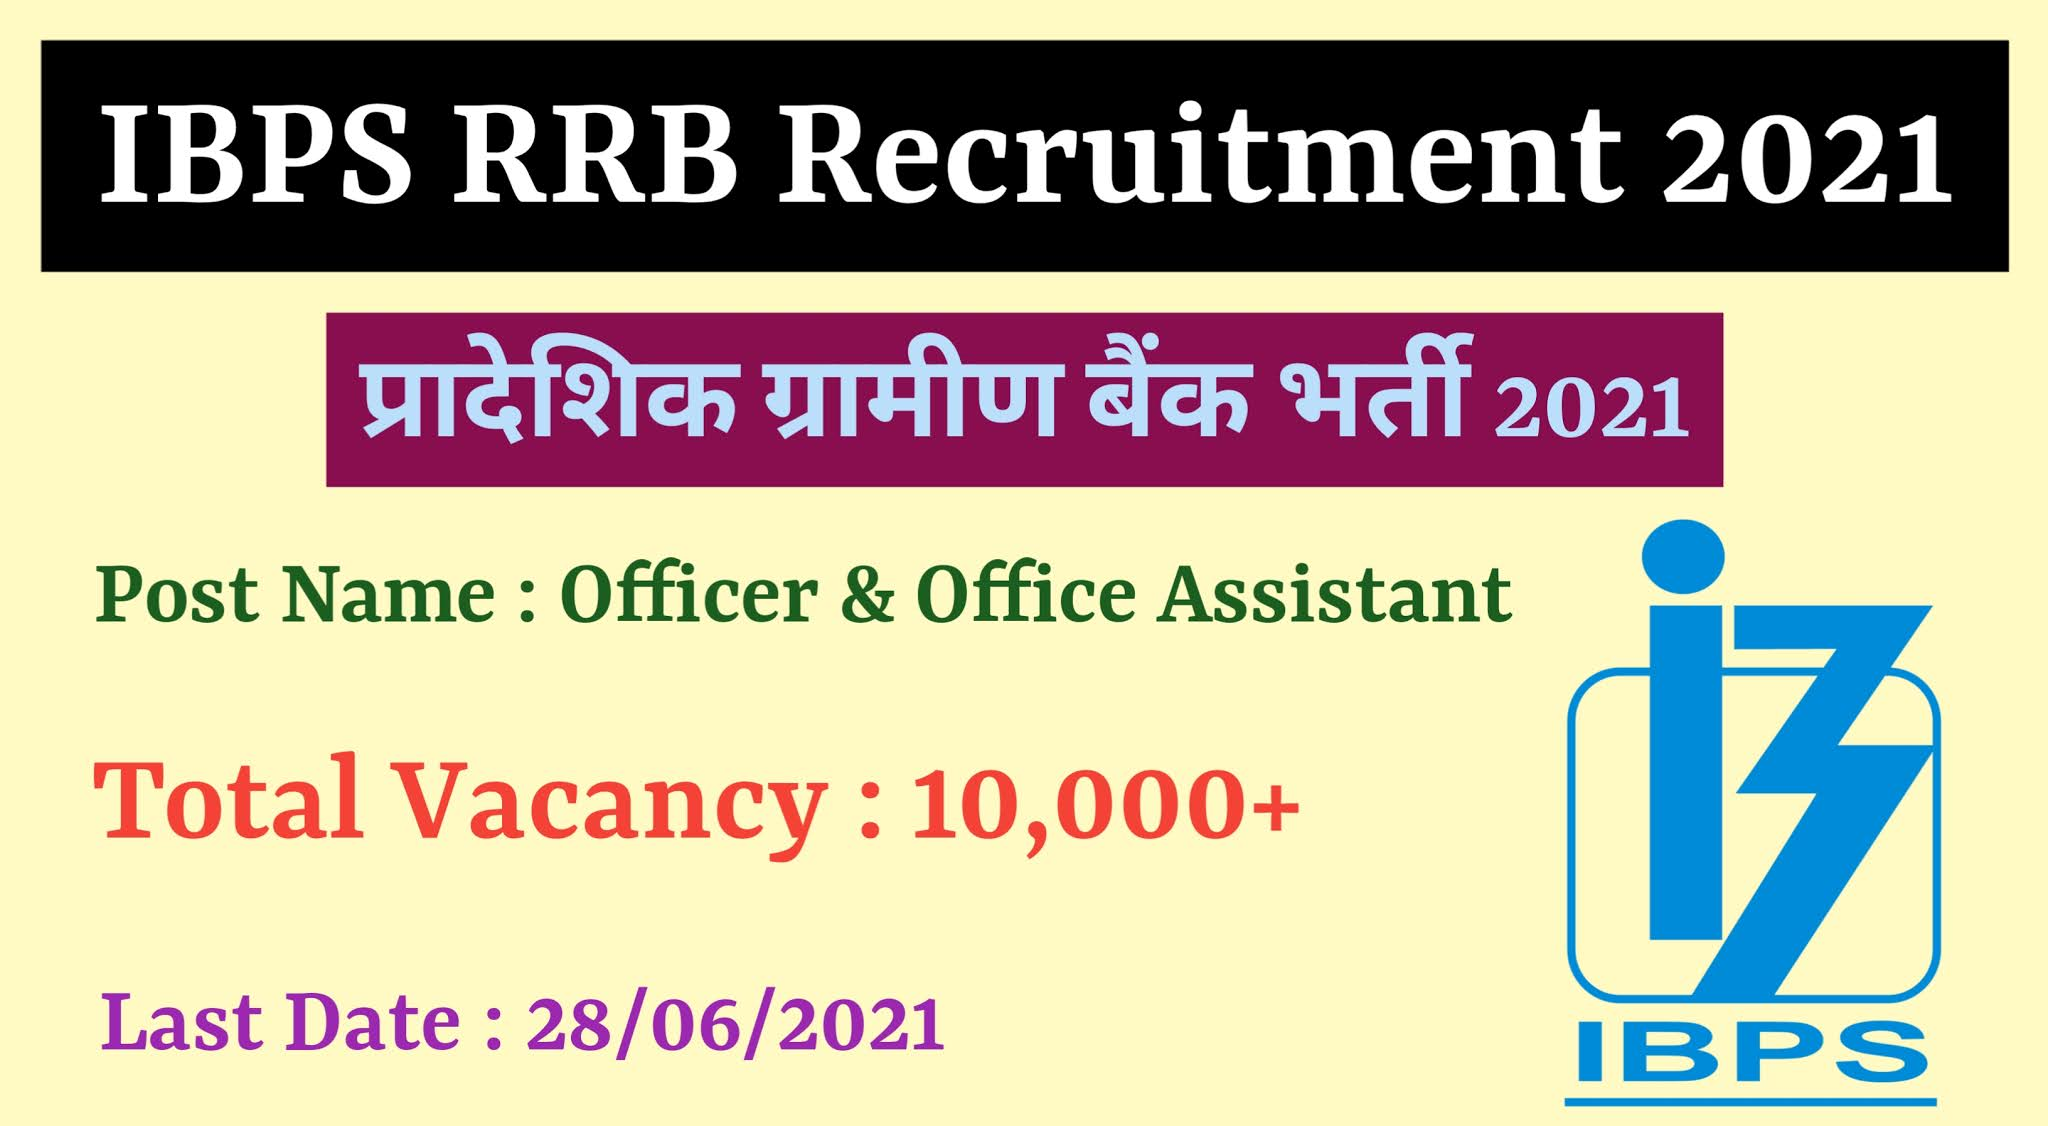 IBPS RRB Notification 2021 | IBPS RRB Notification 2021 pdf | IBPS RRB Recruitment 2021 | IBPS Recruitment Officers and Office Assistant post | IBPS RRB Salary | IBPS RRB Office Assistant Salary | IBPS RRB Syllabus | IBPS RRB state wise Vacancy 2021 | IBPS RRB Syllabus 2021 | IBPS RRB Syllabus PDF | IBPS RRB Selection Process | IBPS RRB Salary 2021 | IBPS RRB Salary Structure | IBPS RRB Apply Online 2021 | IBPS RRB Notification 2021 Qualification | IBPS RRB Notification 2021 PDF Download | IBPS Notification 2021 | IBPS RRB Notification 2021 Fees | IBPS RRB Notification 2021 Vacancy | IBPS RRB Notification 2021 Eligibility| IBPS Clerk Eligibility | IBPS RRB Eligibility Criteria 2021 | IBPS RRB Exam Date 2021 | IBPS RRB Exam Pattern | IBPS RRB Exam Notification 2021 | IBPS RRB 2021 Notification out